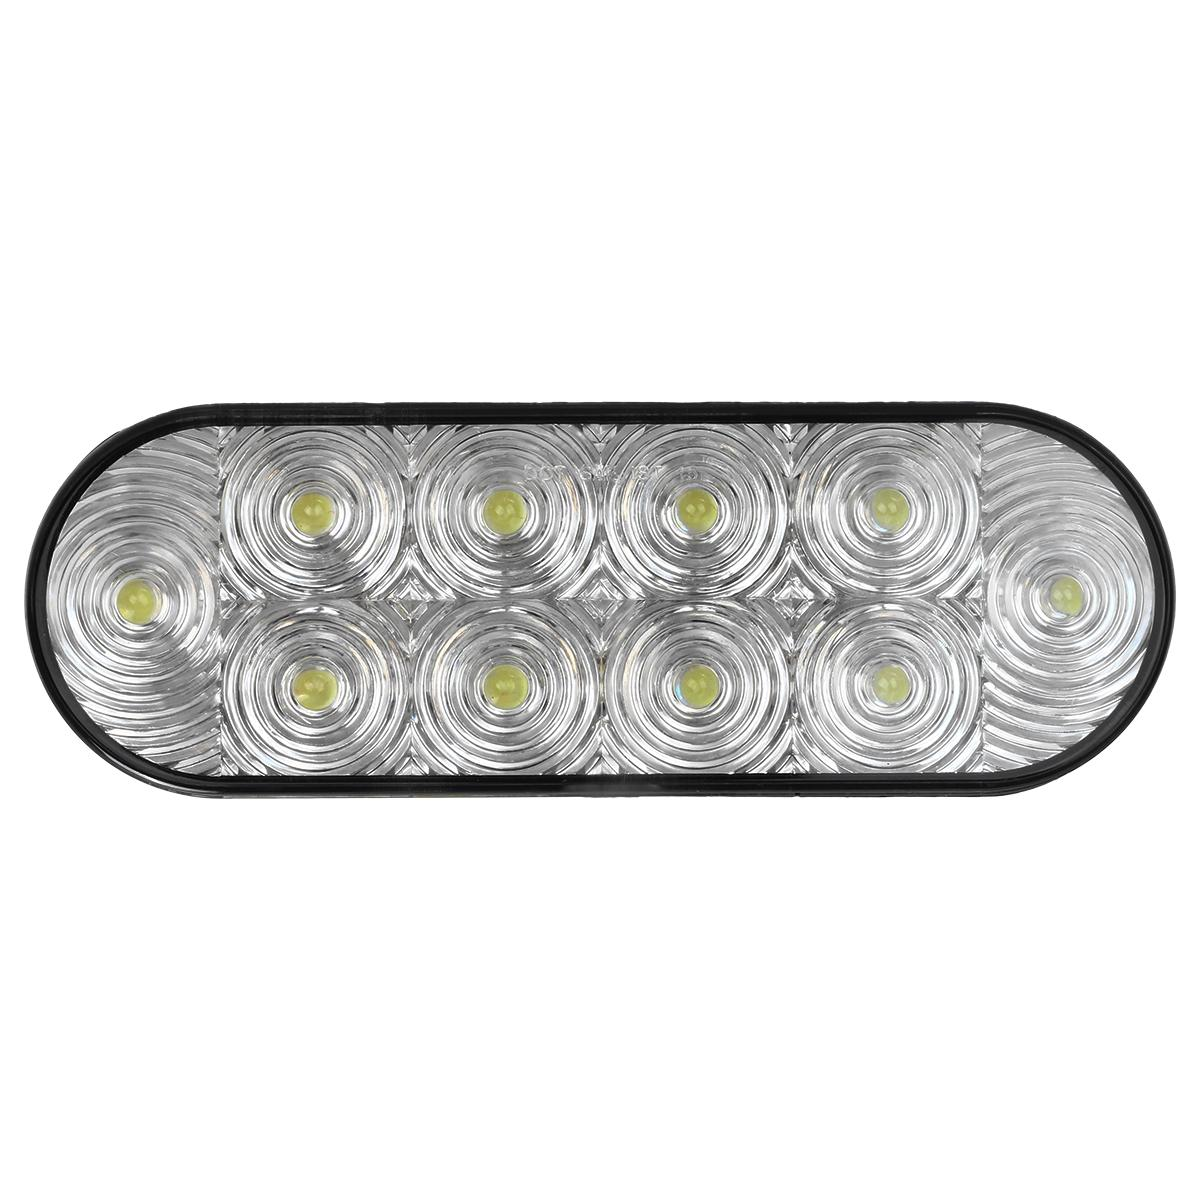 2x clear white oval 10 led reverse fog tail light 6 truck. Black Bedroom Furniture Sets. Home Design Ideas